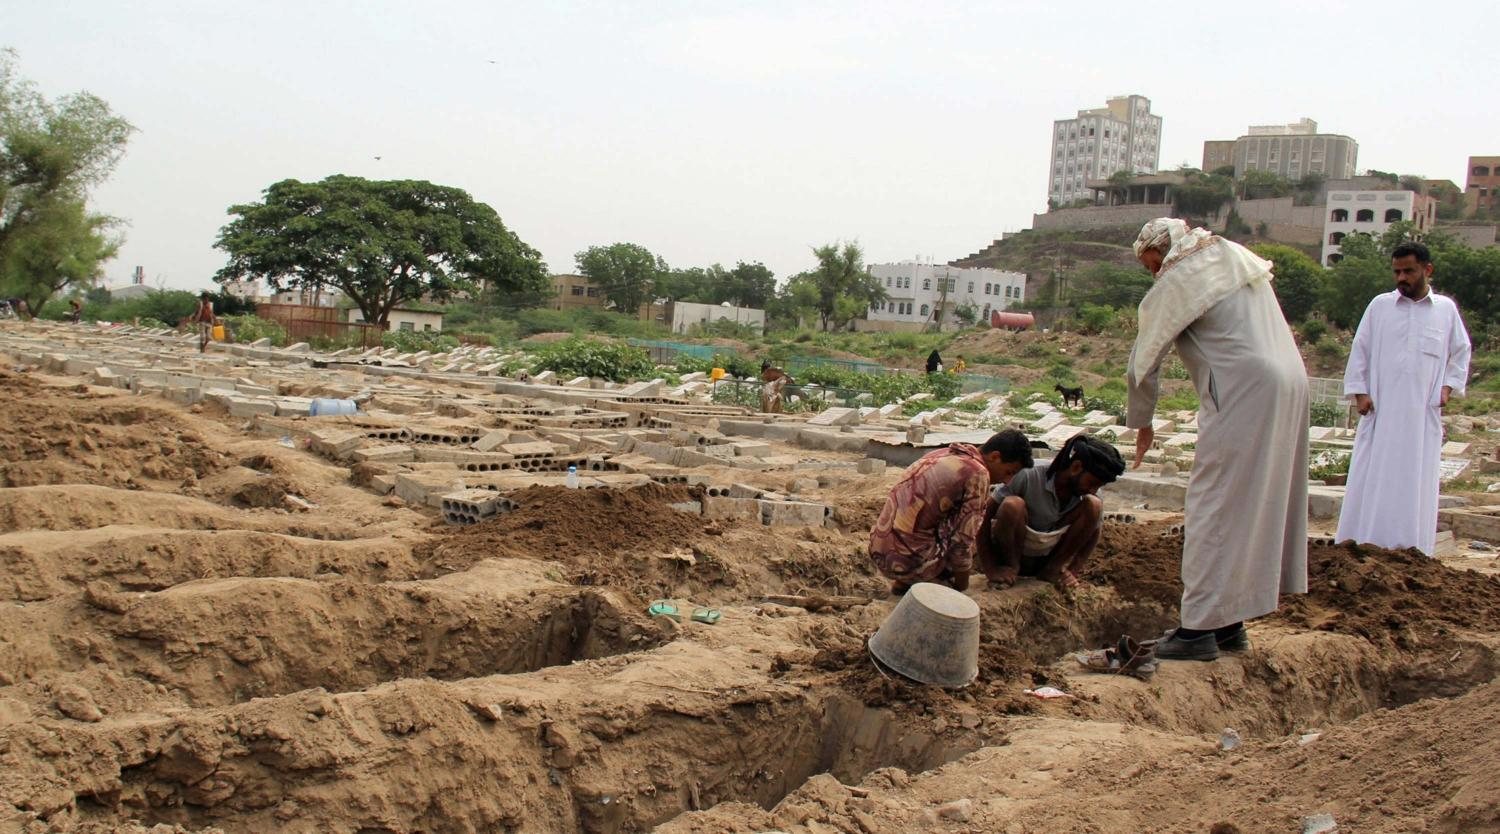 People dig graves at a cemetery where victims of the coronavirus disease (COVID-19) are buried in Taiz, Yemen June 23, 2020. Picture taken June 23, 2020.